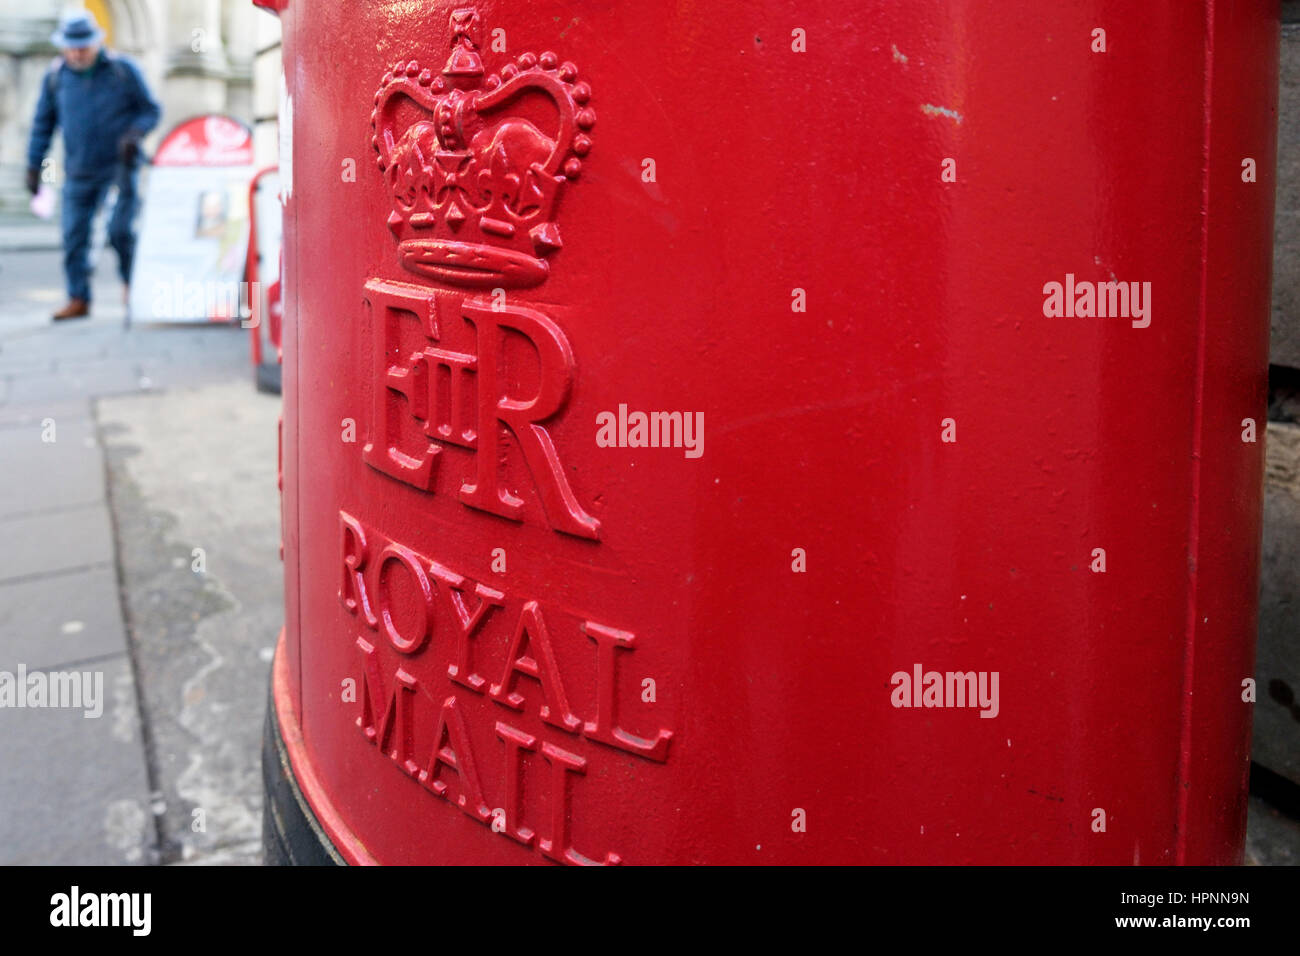 A red Royal Mail post box is pictured outside a post office in Bath,England, UK - Stock Image